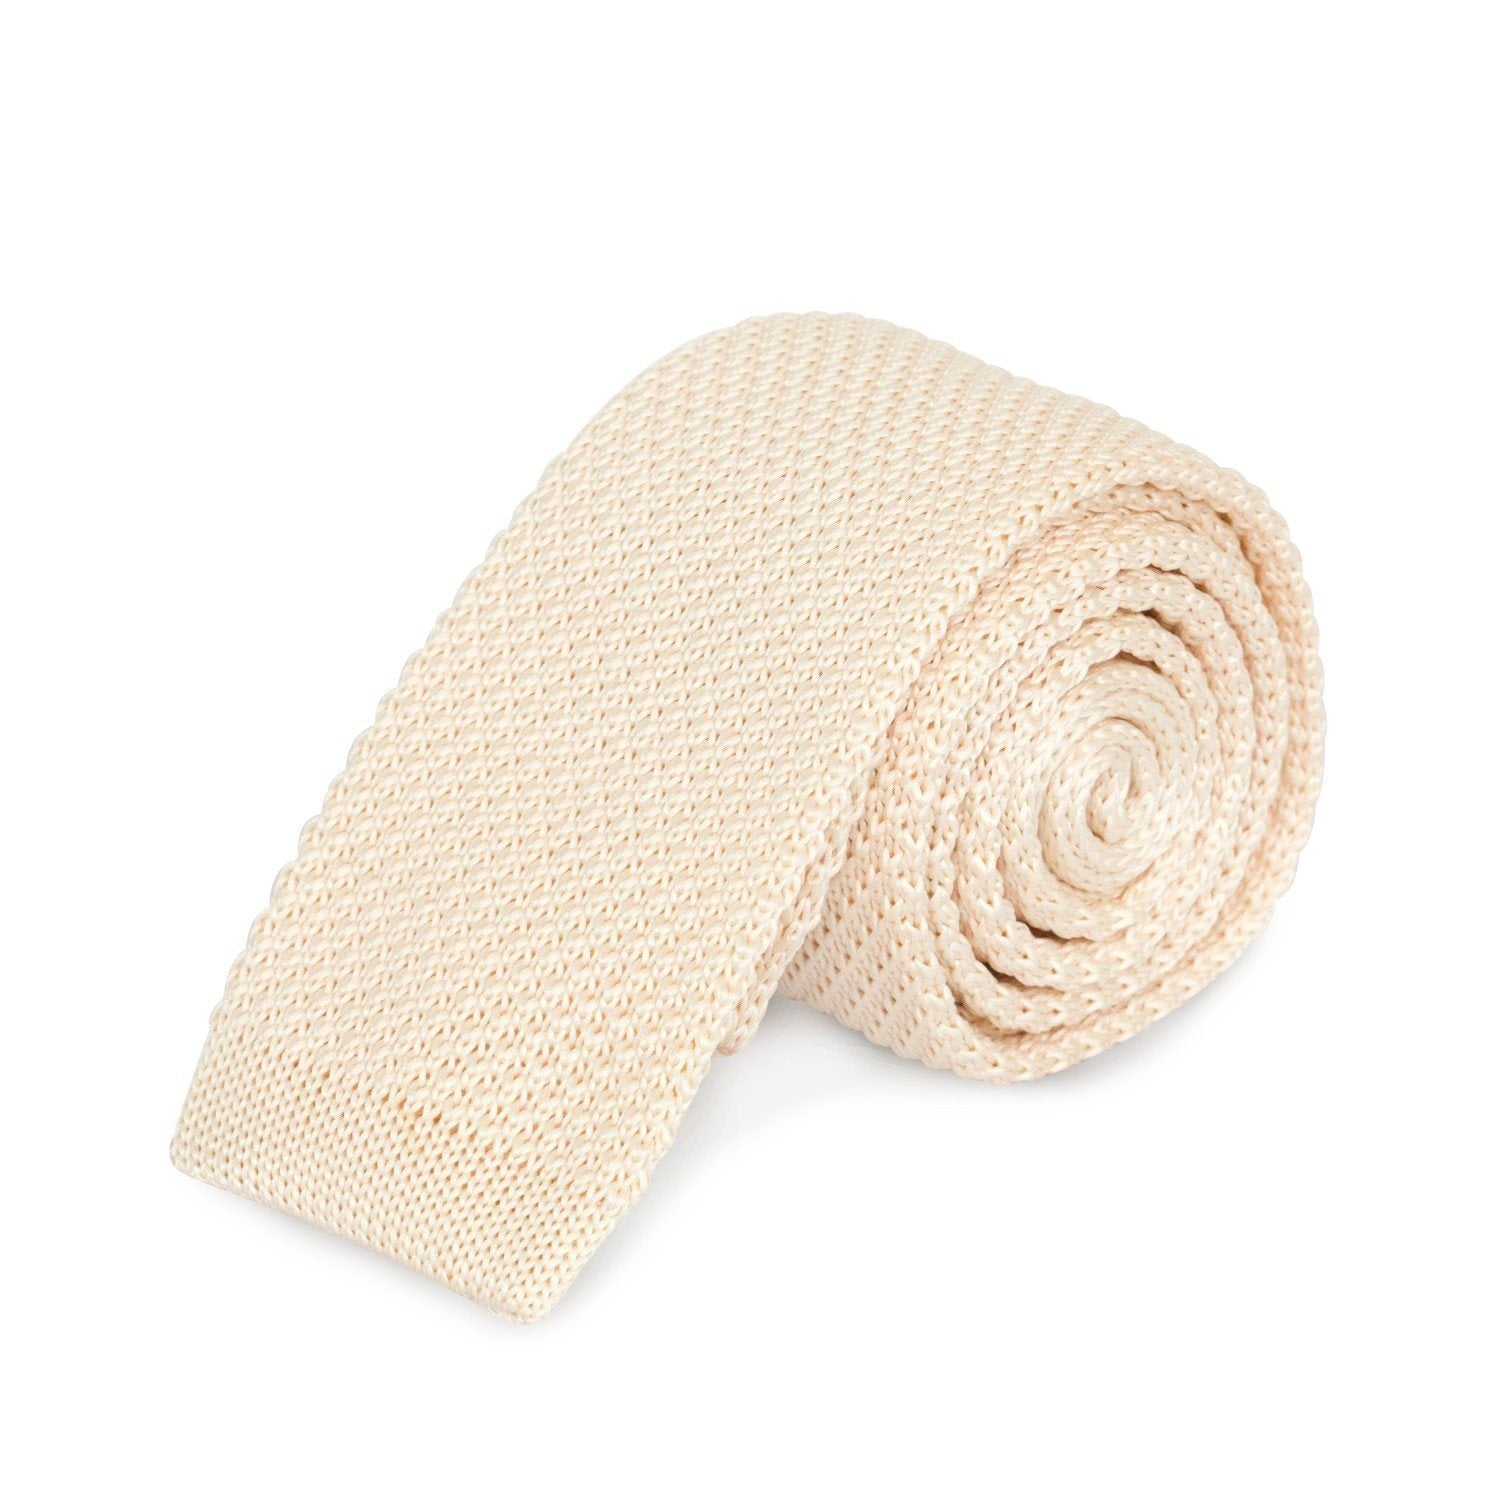 Cream Knit Tie Ties Cuffed.com.au